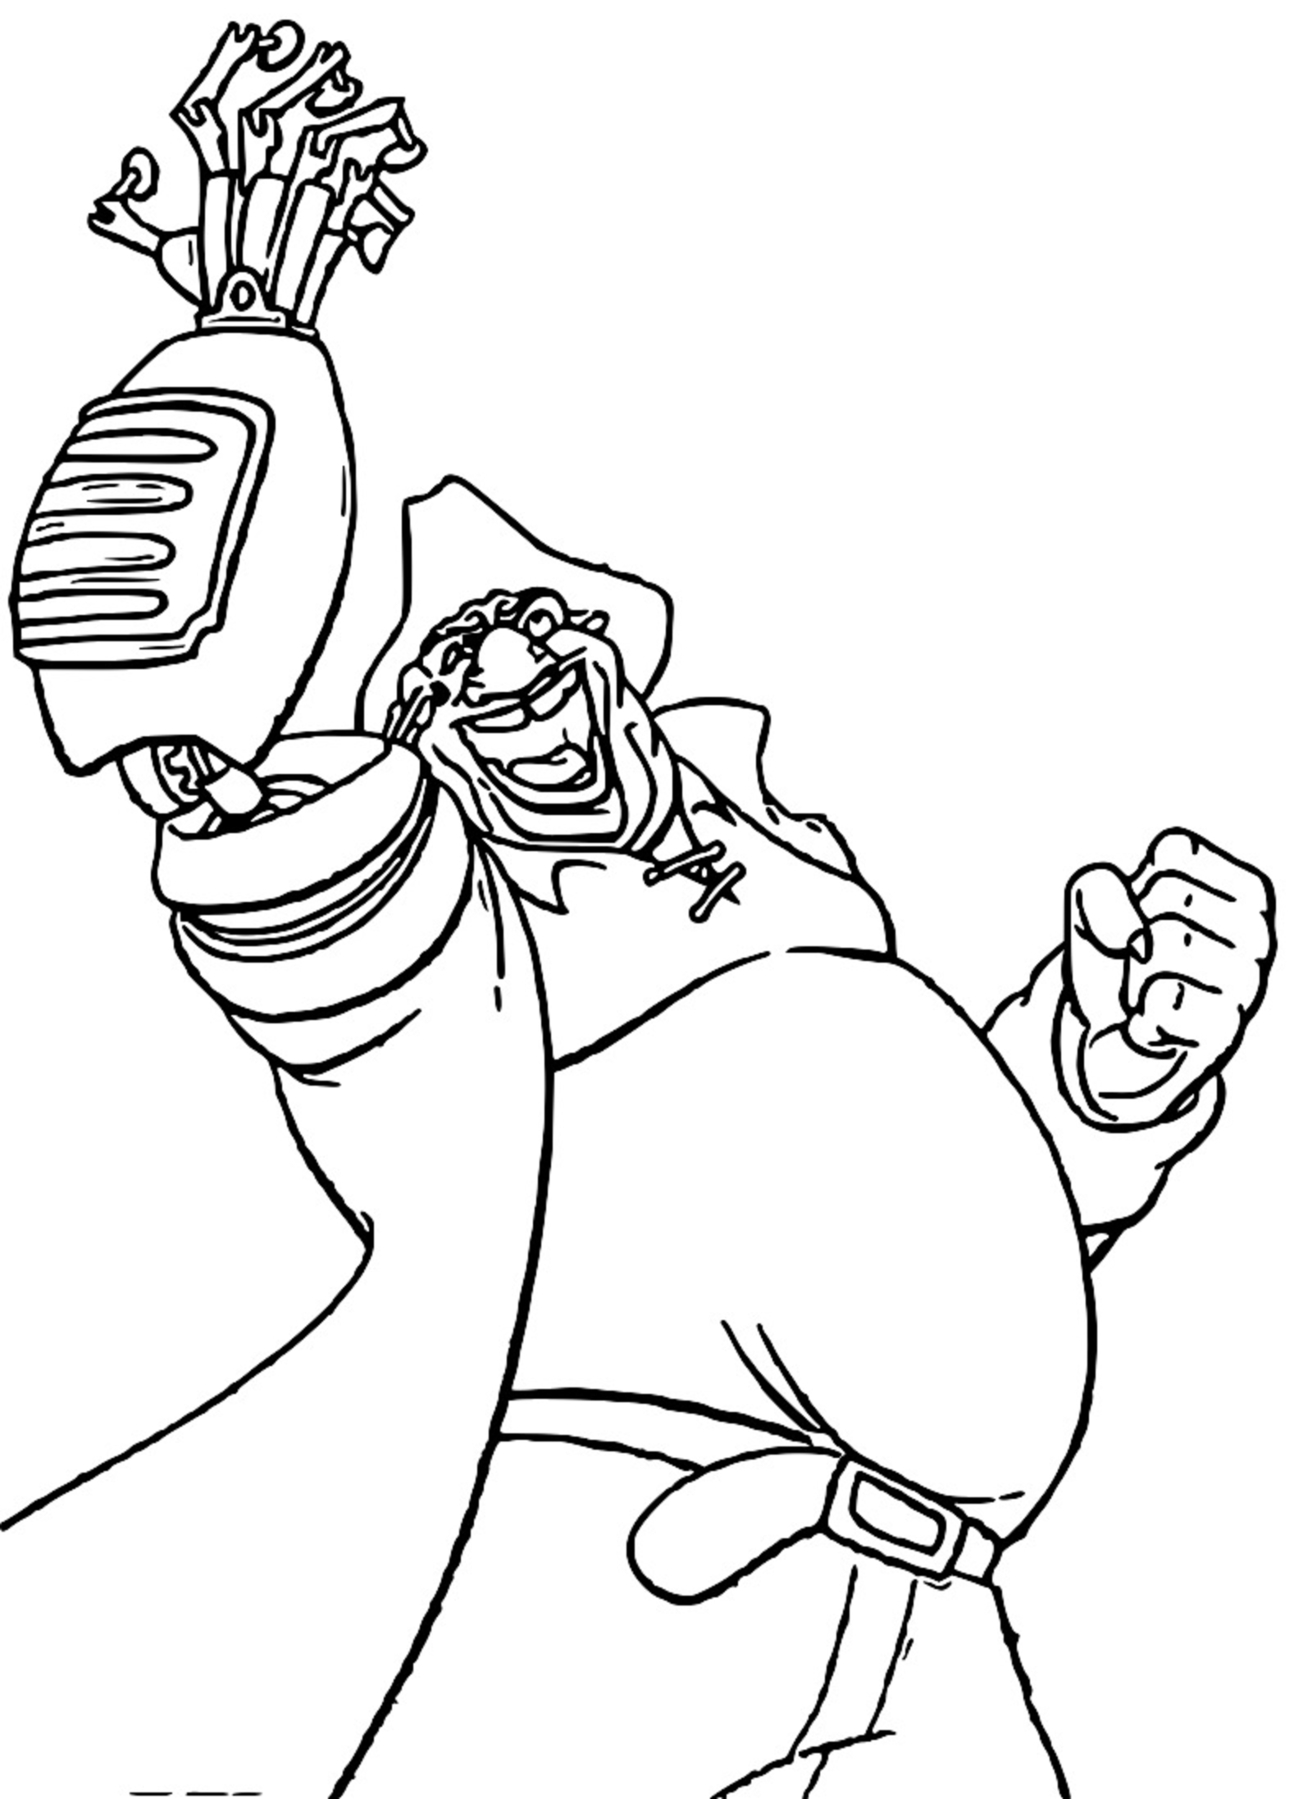 Treasure Planet im42 Coloring Pages_Cartoonized